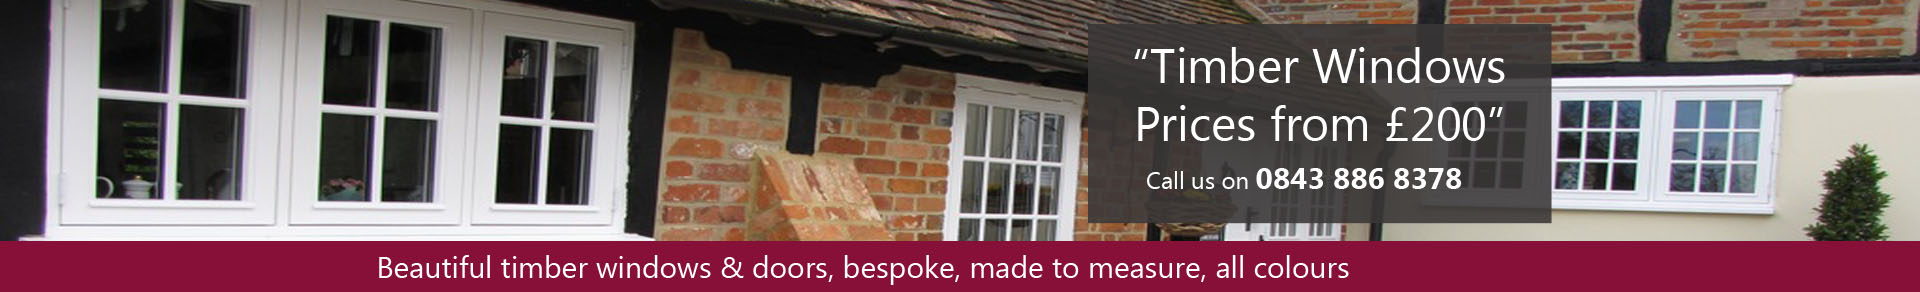 timber-windows-banner